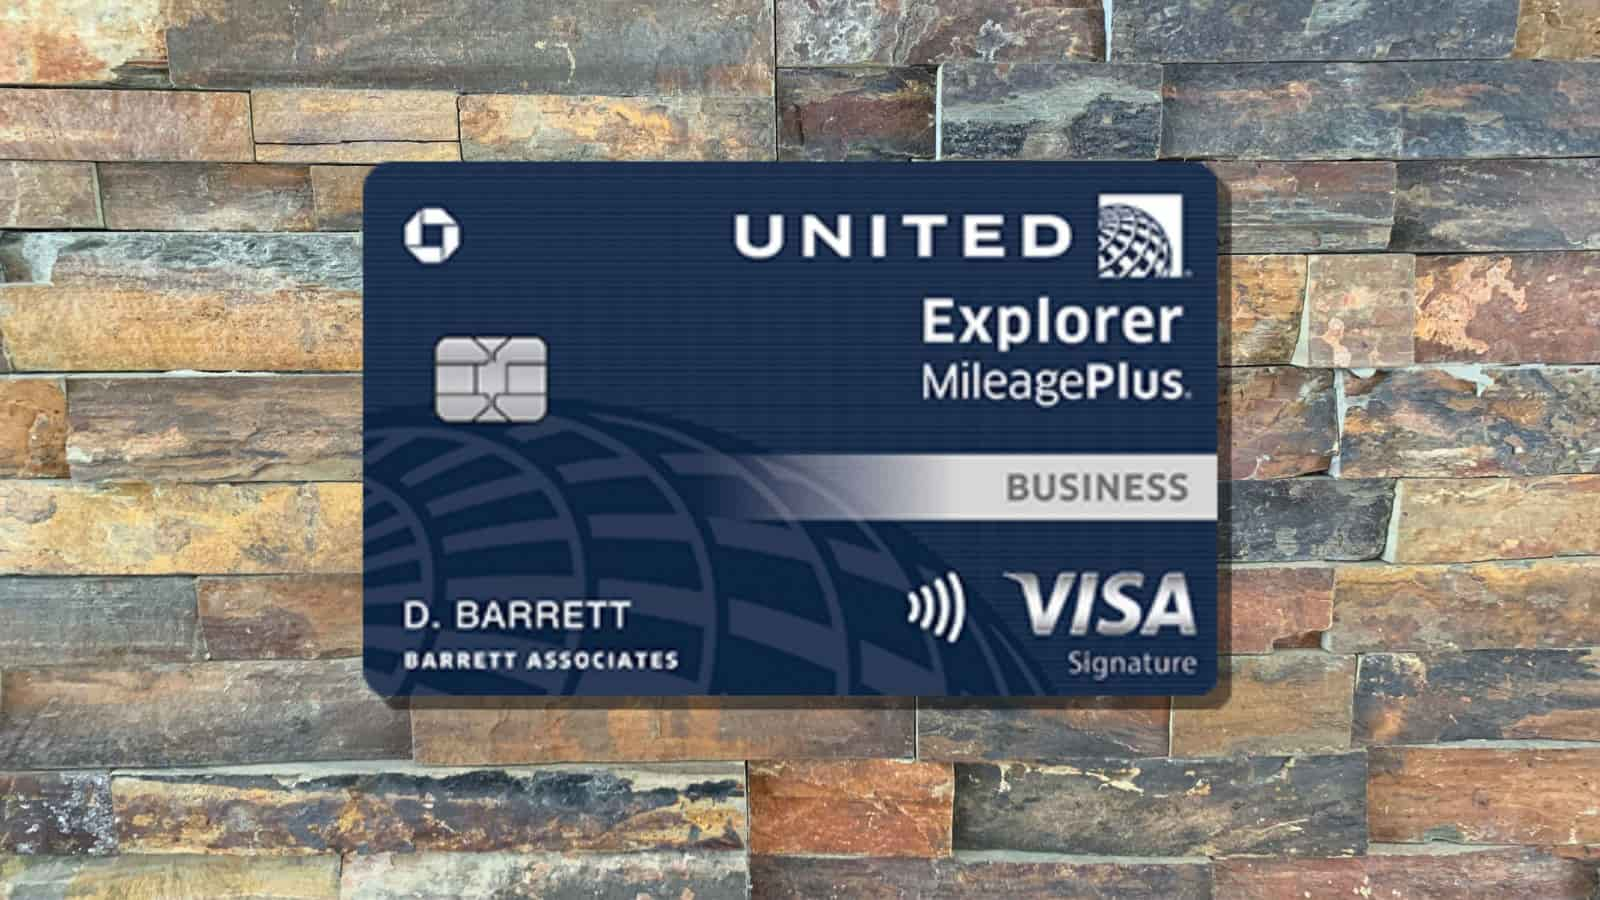 United Explorer Business Card Review: Made for United ...